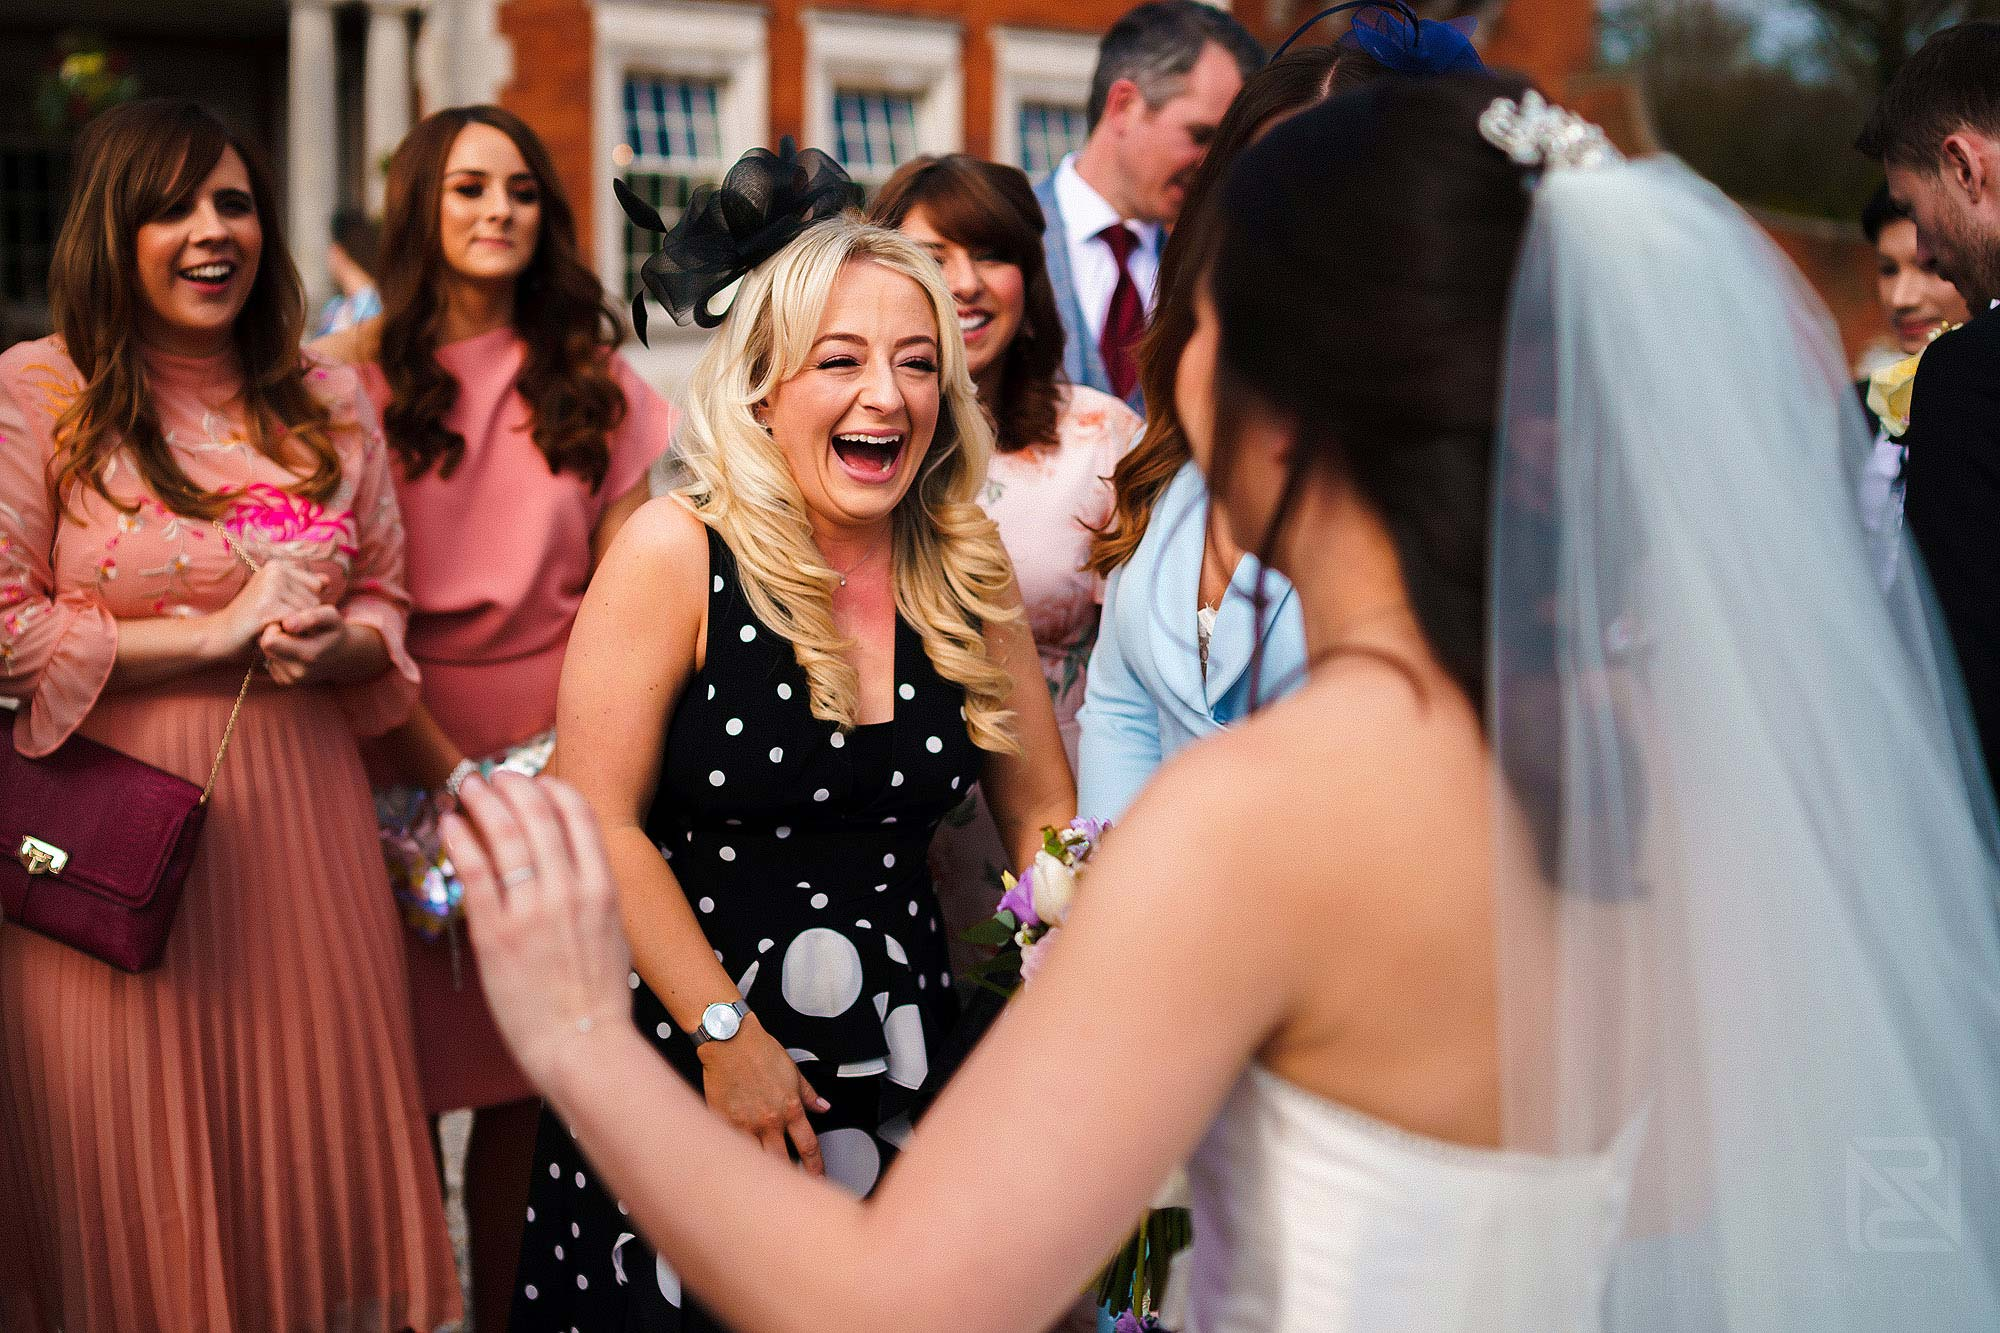 guests congratulating bride during Spring wedding at Eaves Hall